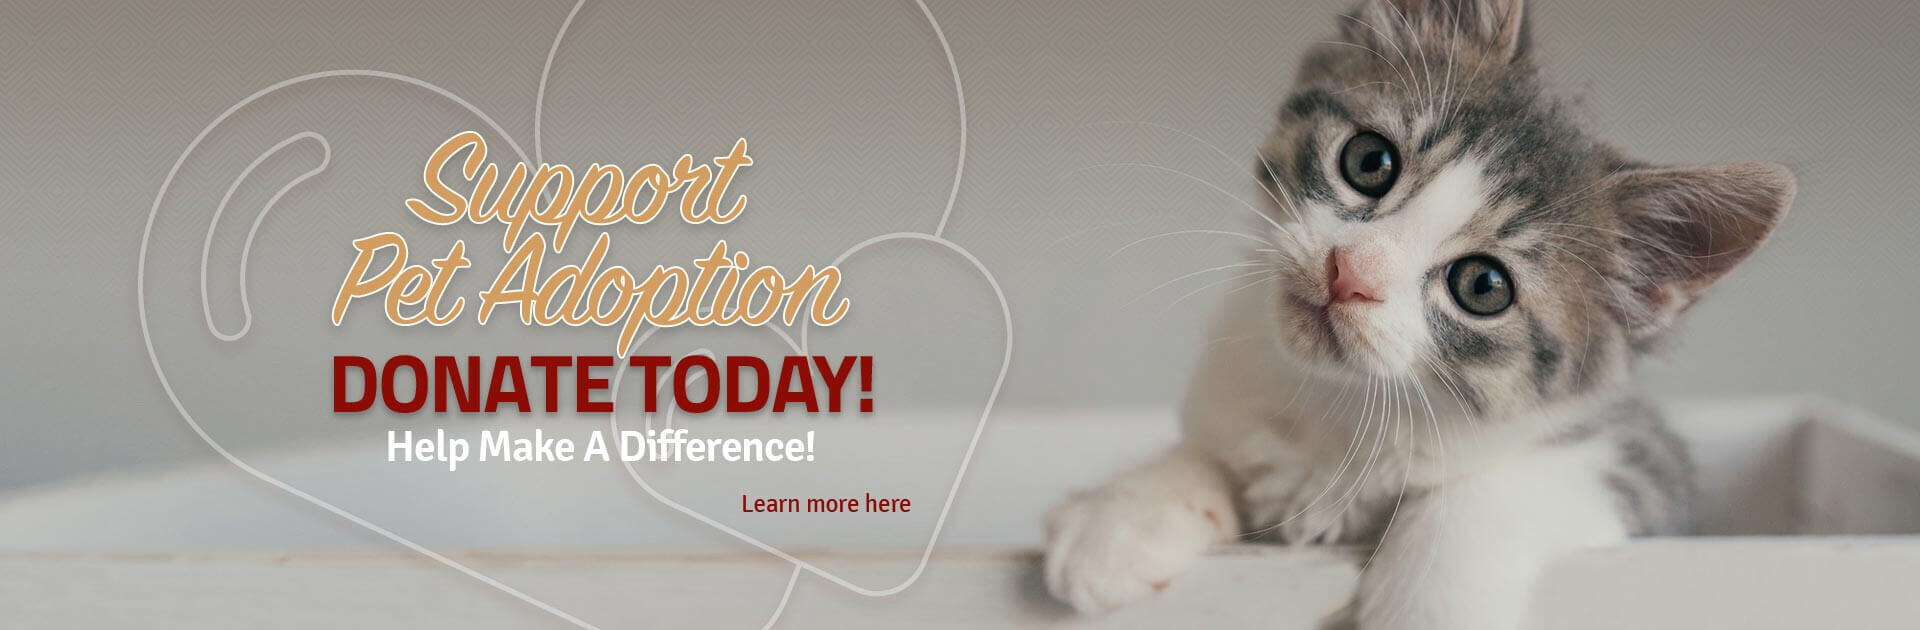 Support Pet Adoption Donate Today! Help Make A Difference!